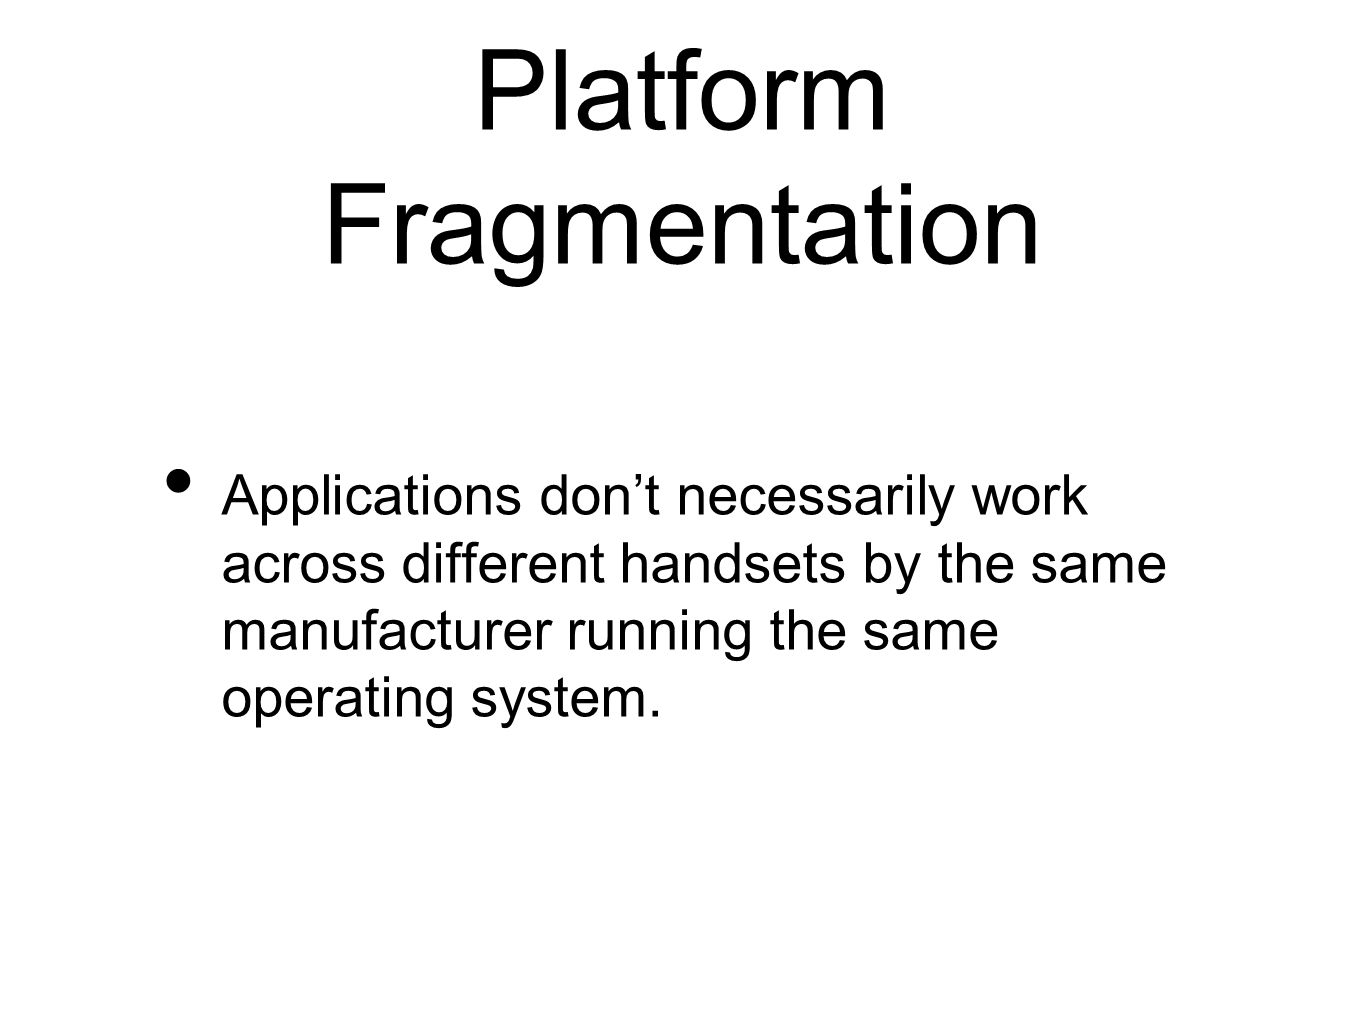 Platform Fragmentation Applications dont necessarily work across different handsets by the same manufacturer running the same operating system.